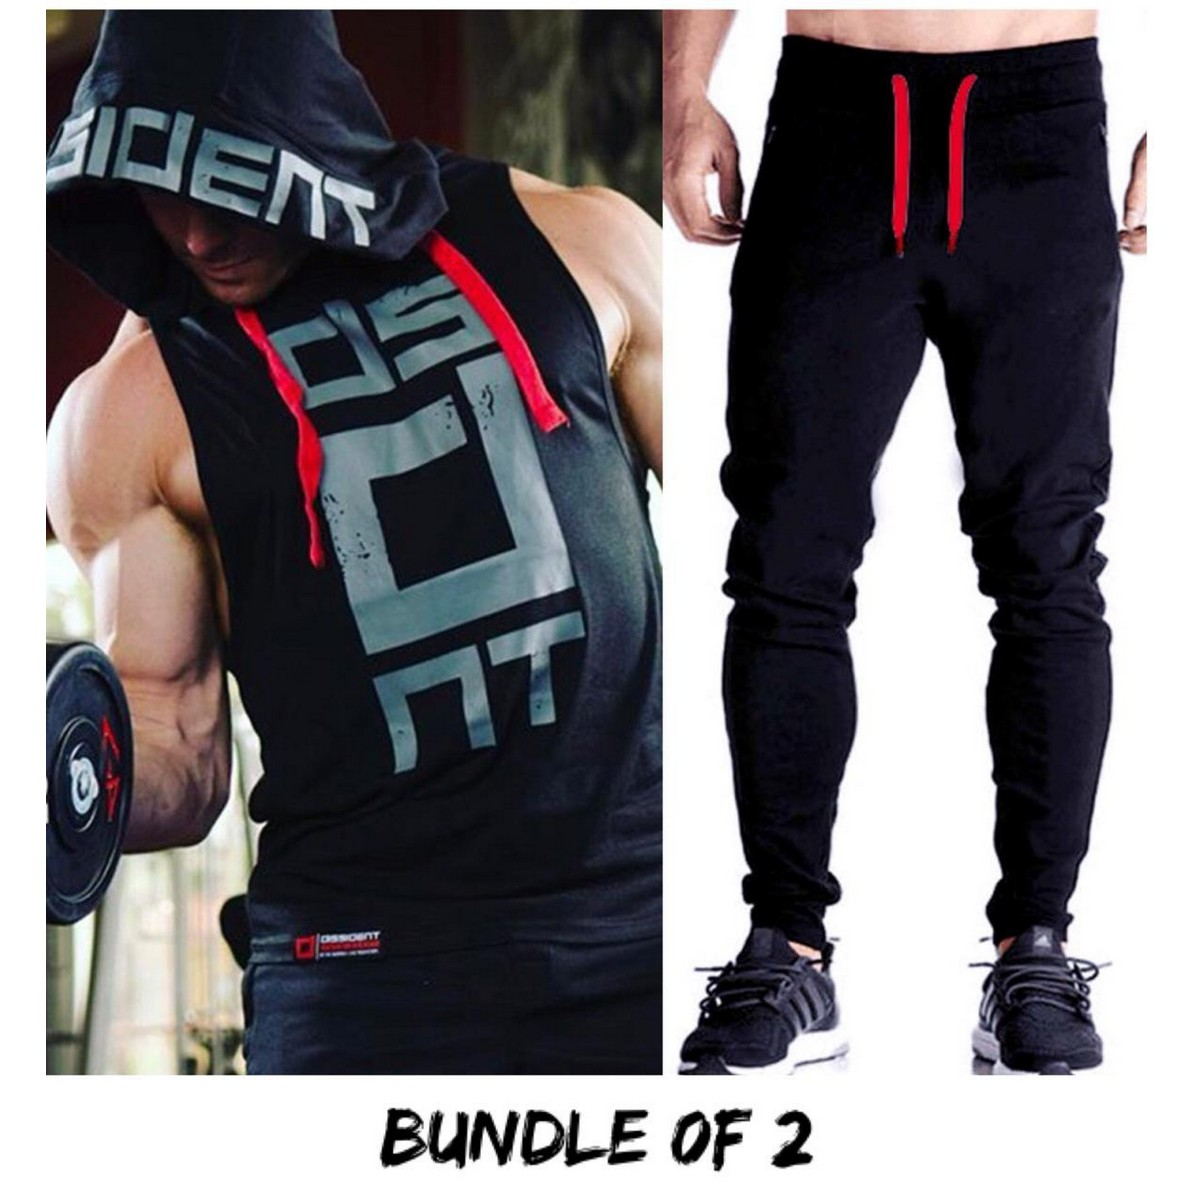 Black Gym Summer Tracksuit, 2 Pieces Suit, New Collection, GYM.TS-1 ,Suit ,Motercycle /Track Suit, Jogging Complete stitched Suit, Shirt And Trouser/ Ready to Wear ).